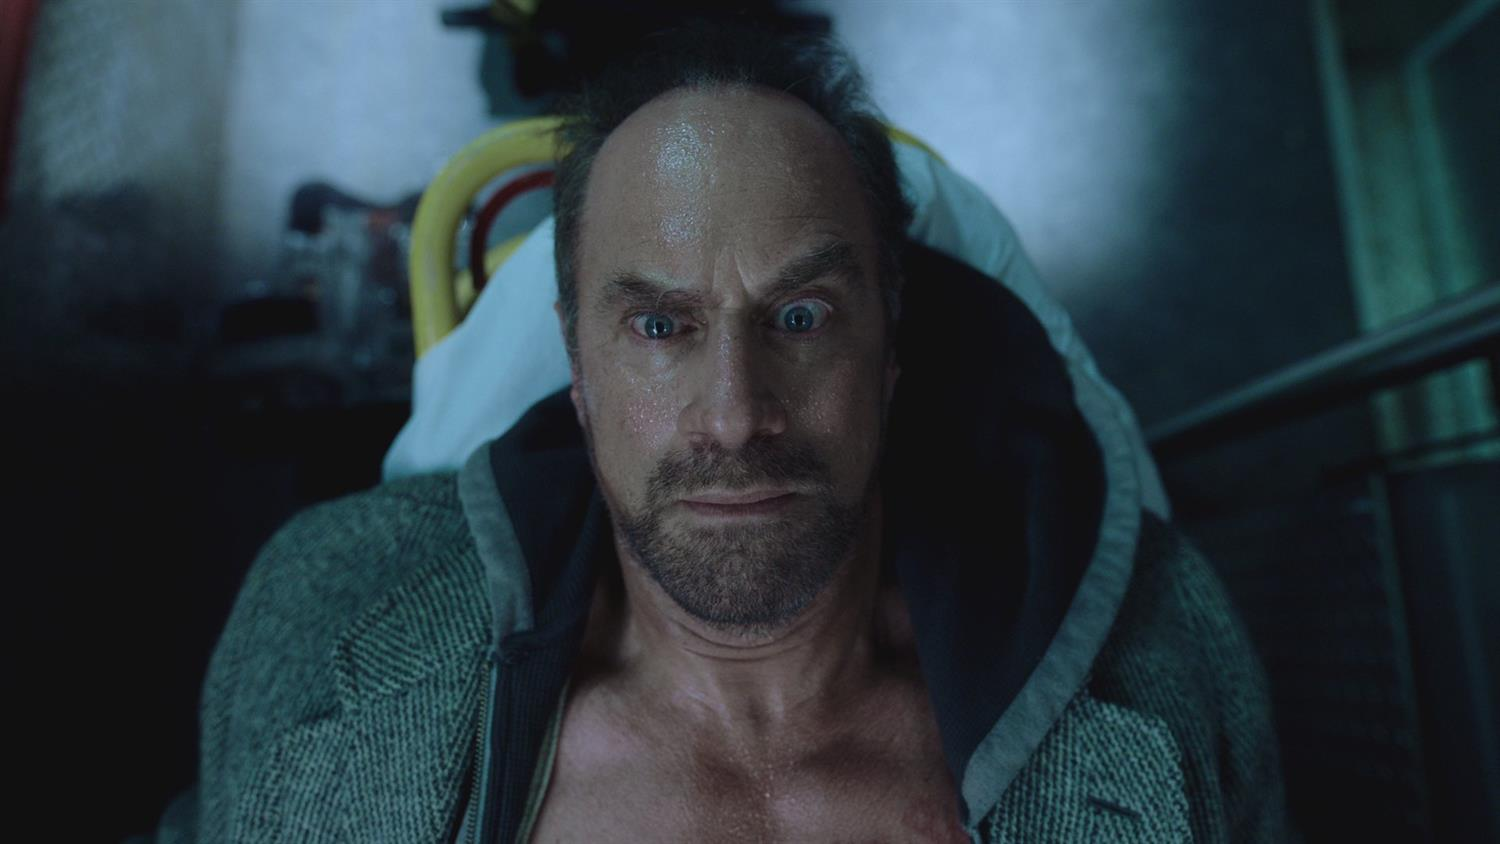 Grant Morrison on Happy! and Christopher Meloni